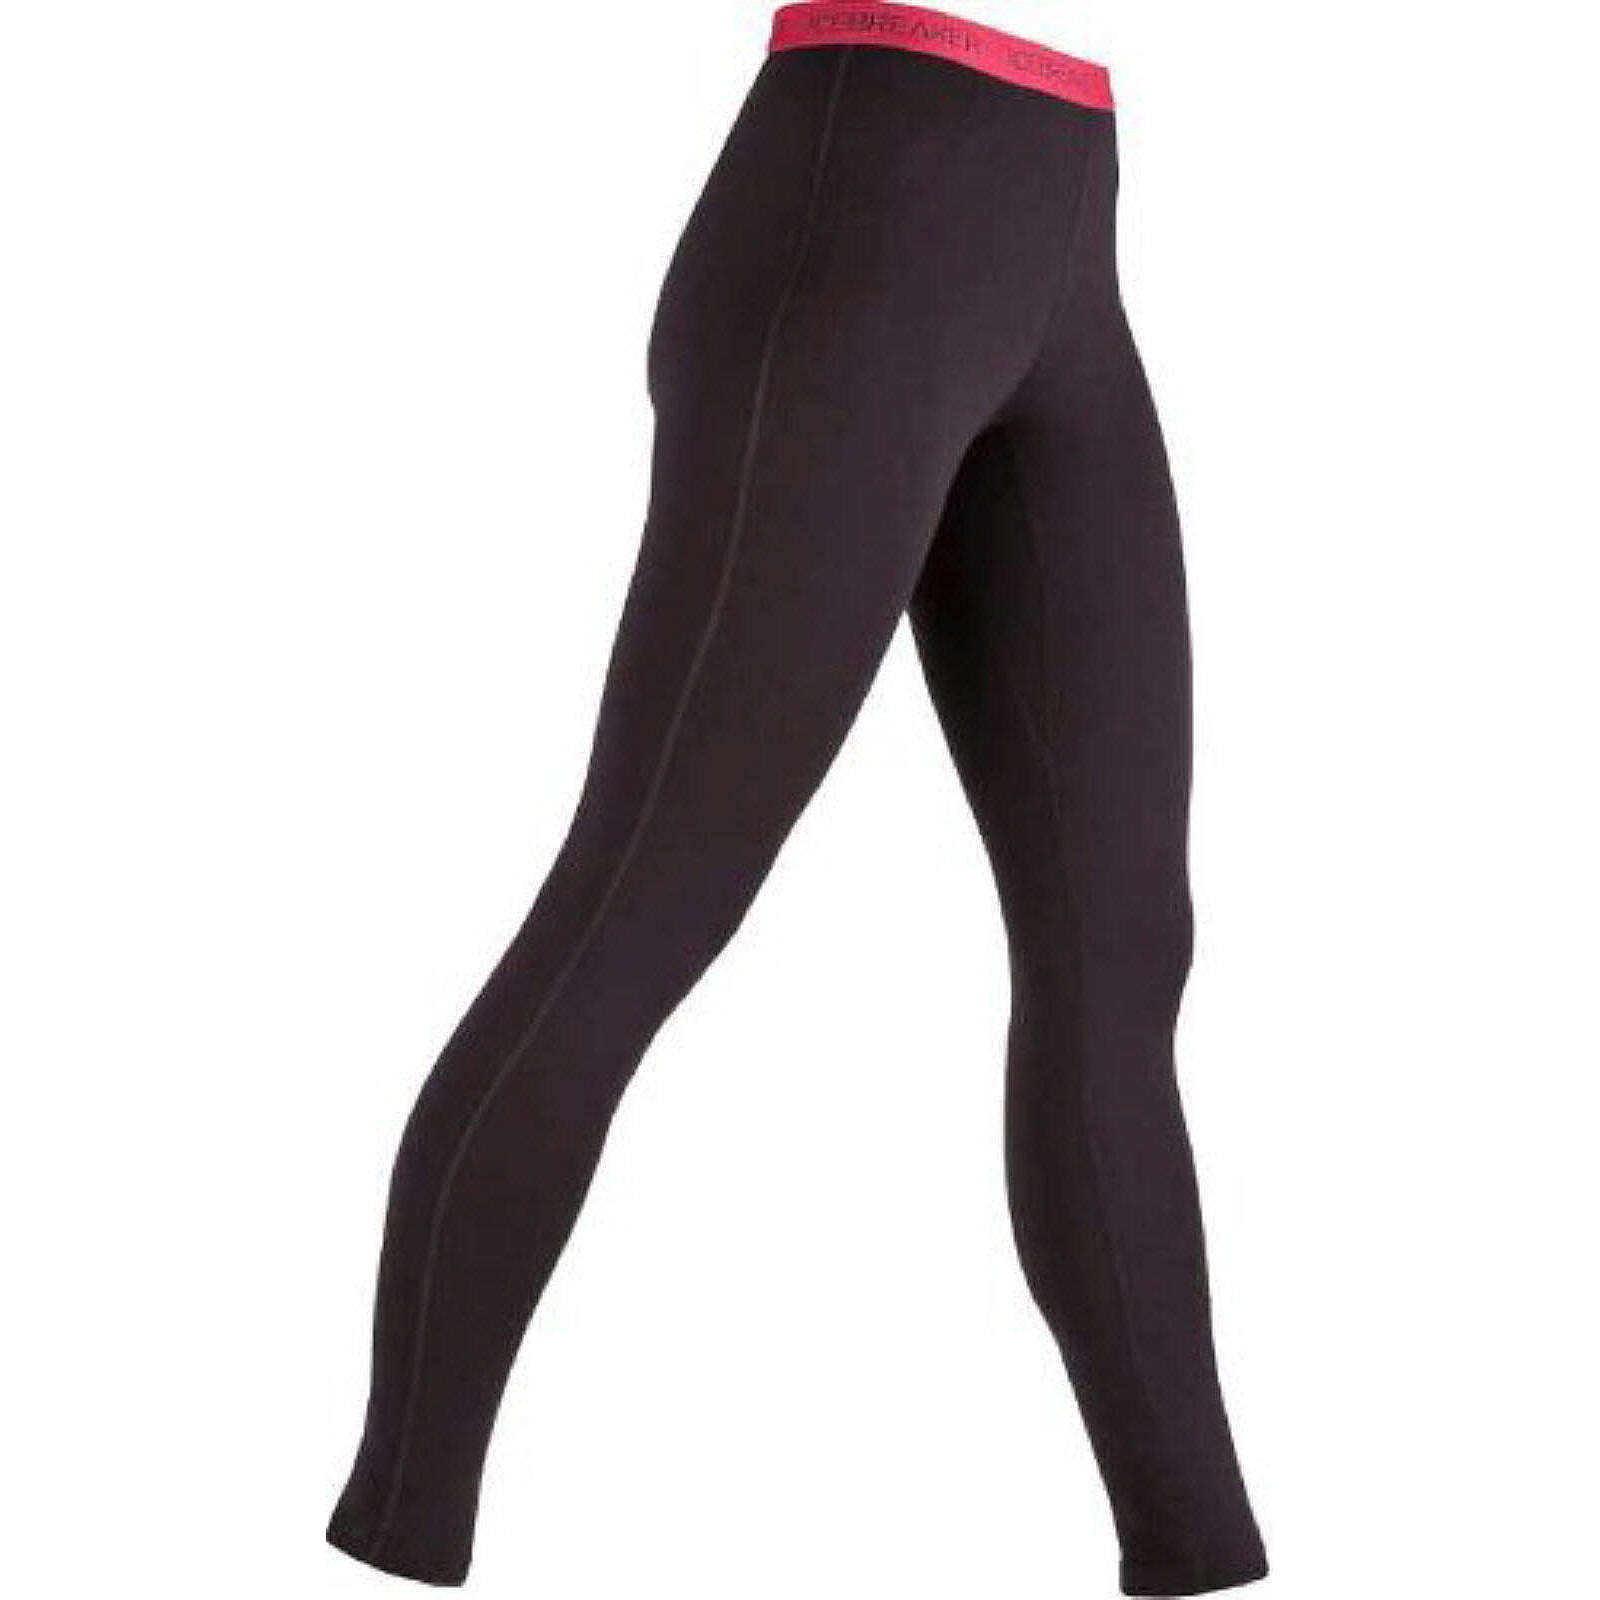 Icebreaker Leggings BF200 Legging Outdoorhosen bordeaux Damen Gr. 34